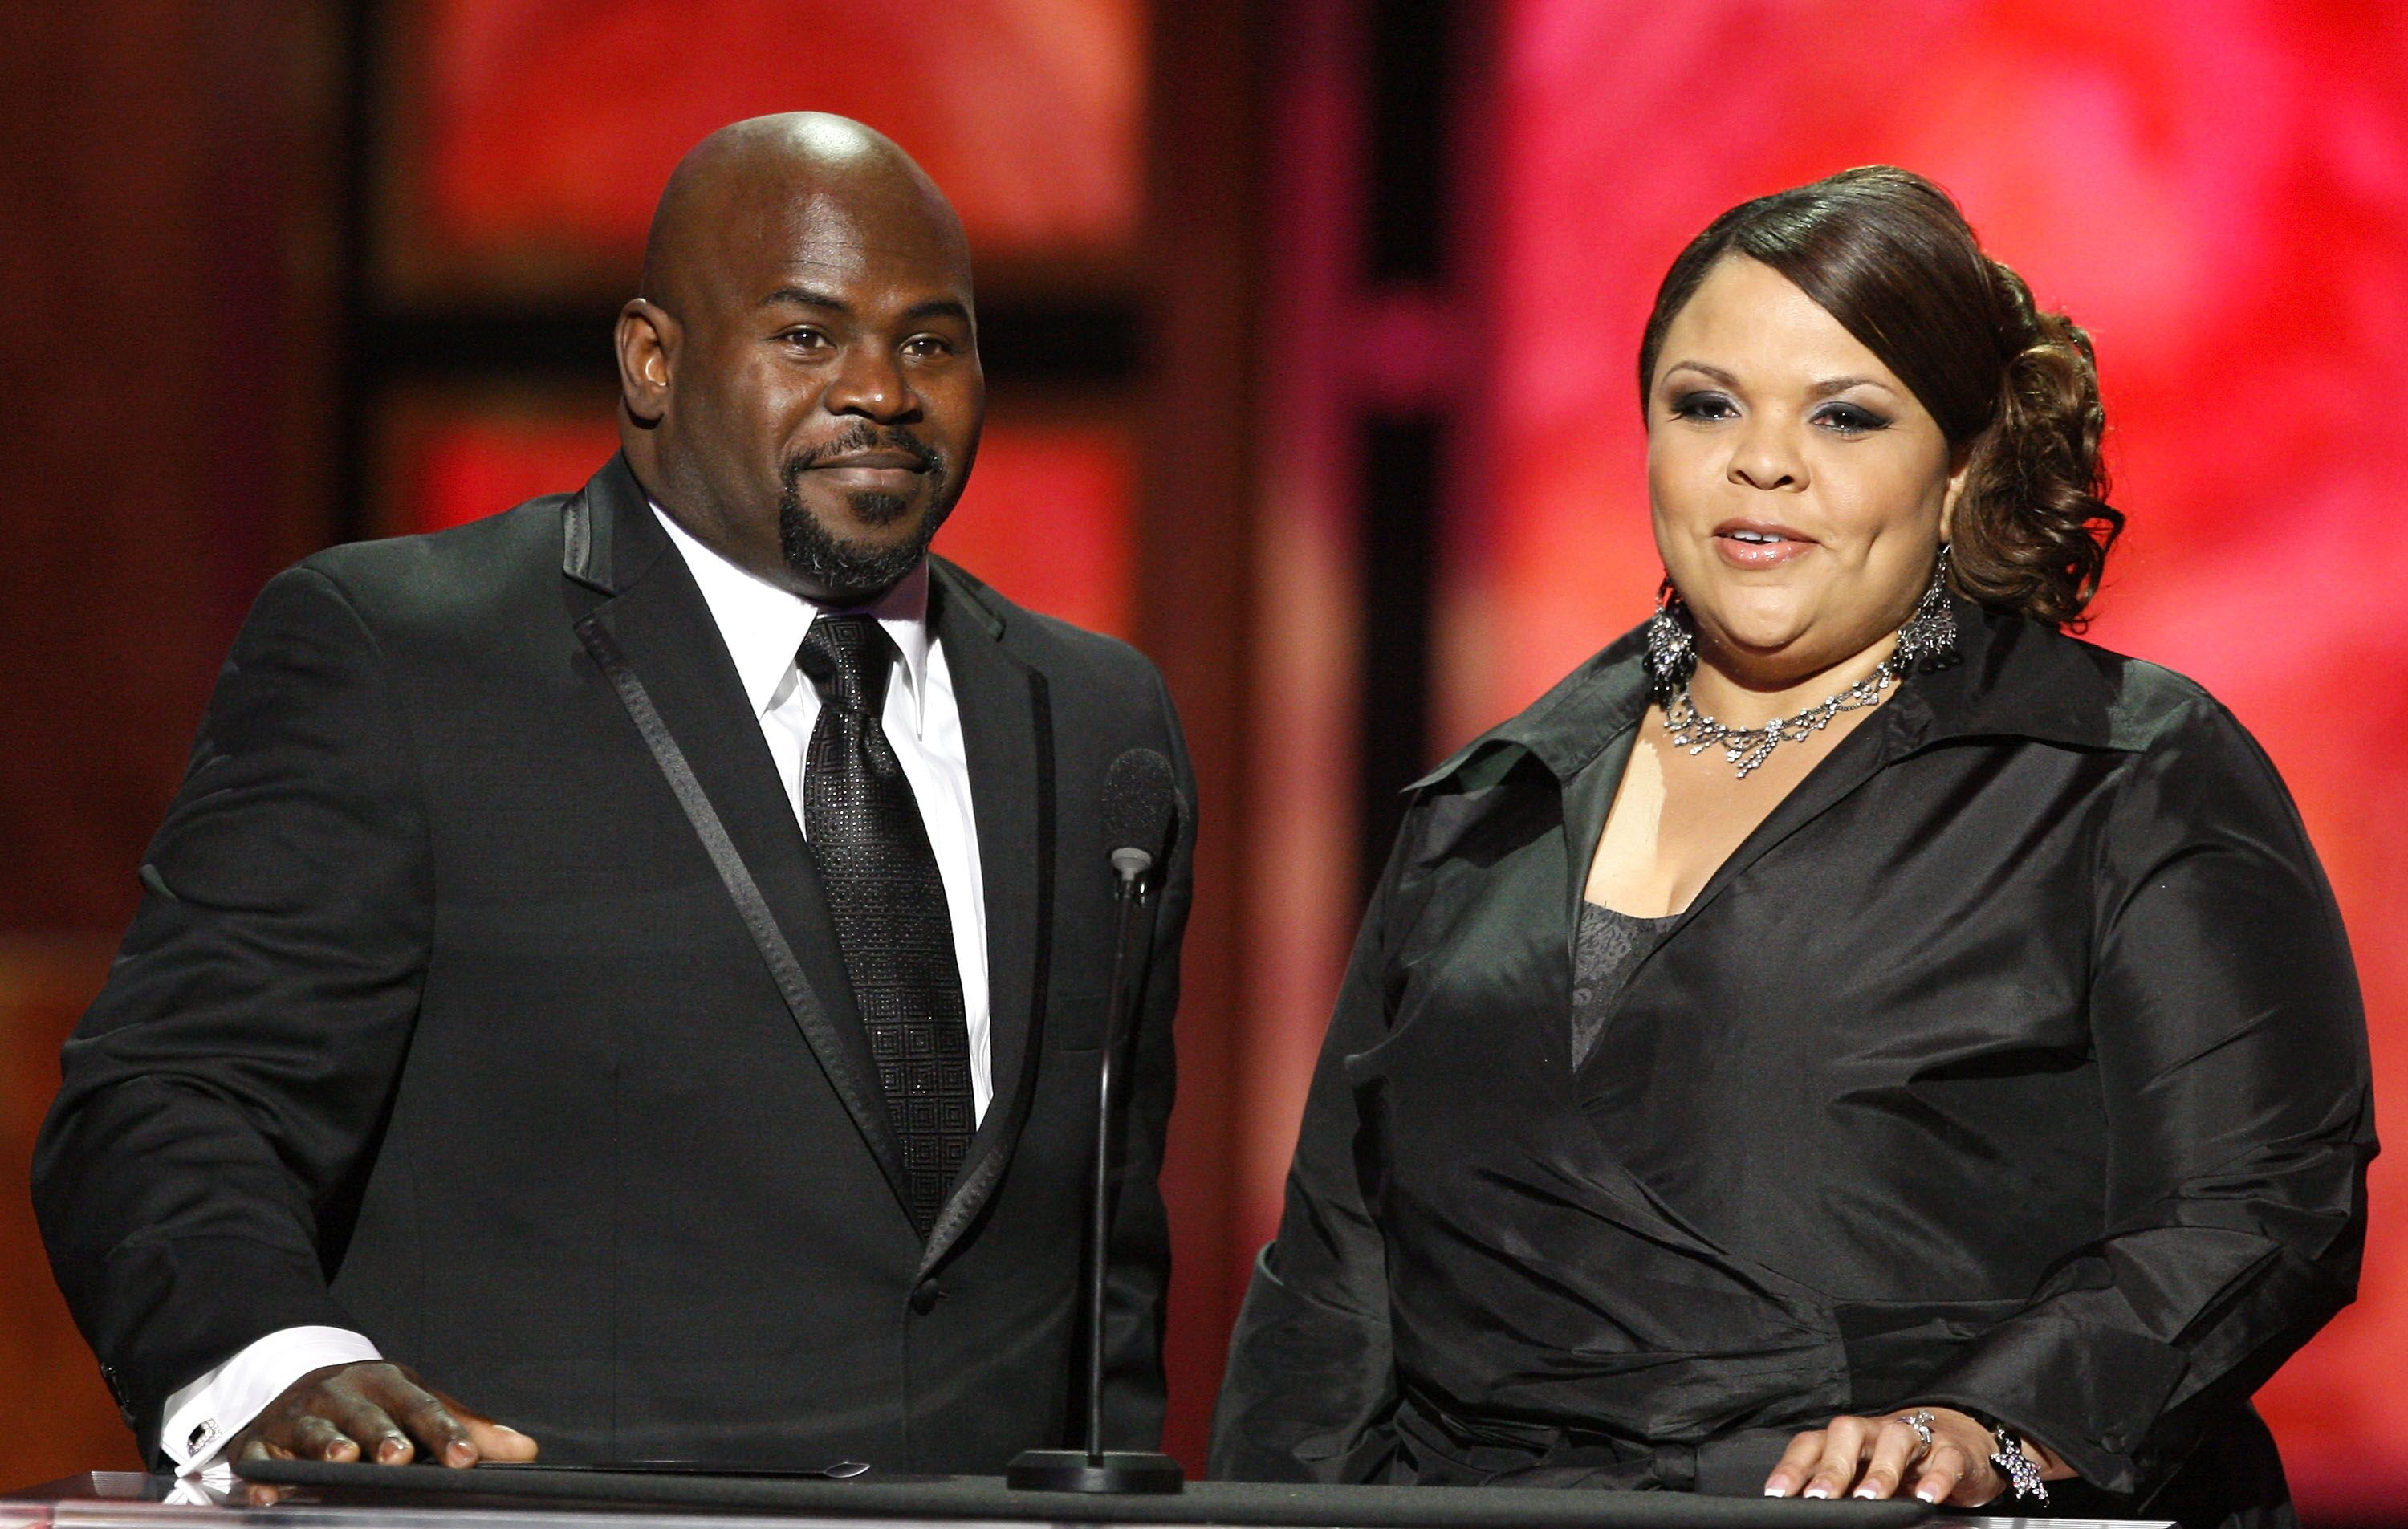 David Mann and Tamela Mann speak during the 40th NAACP Image Awards held at the Shrine Auditorium on February 12, 2009 in Los Angeles, California | Photo: Getty Images